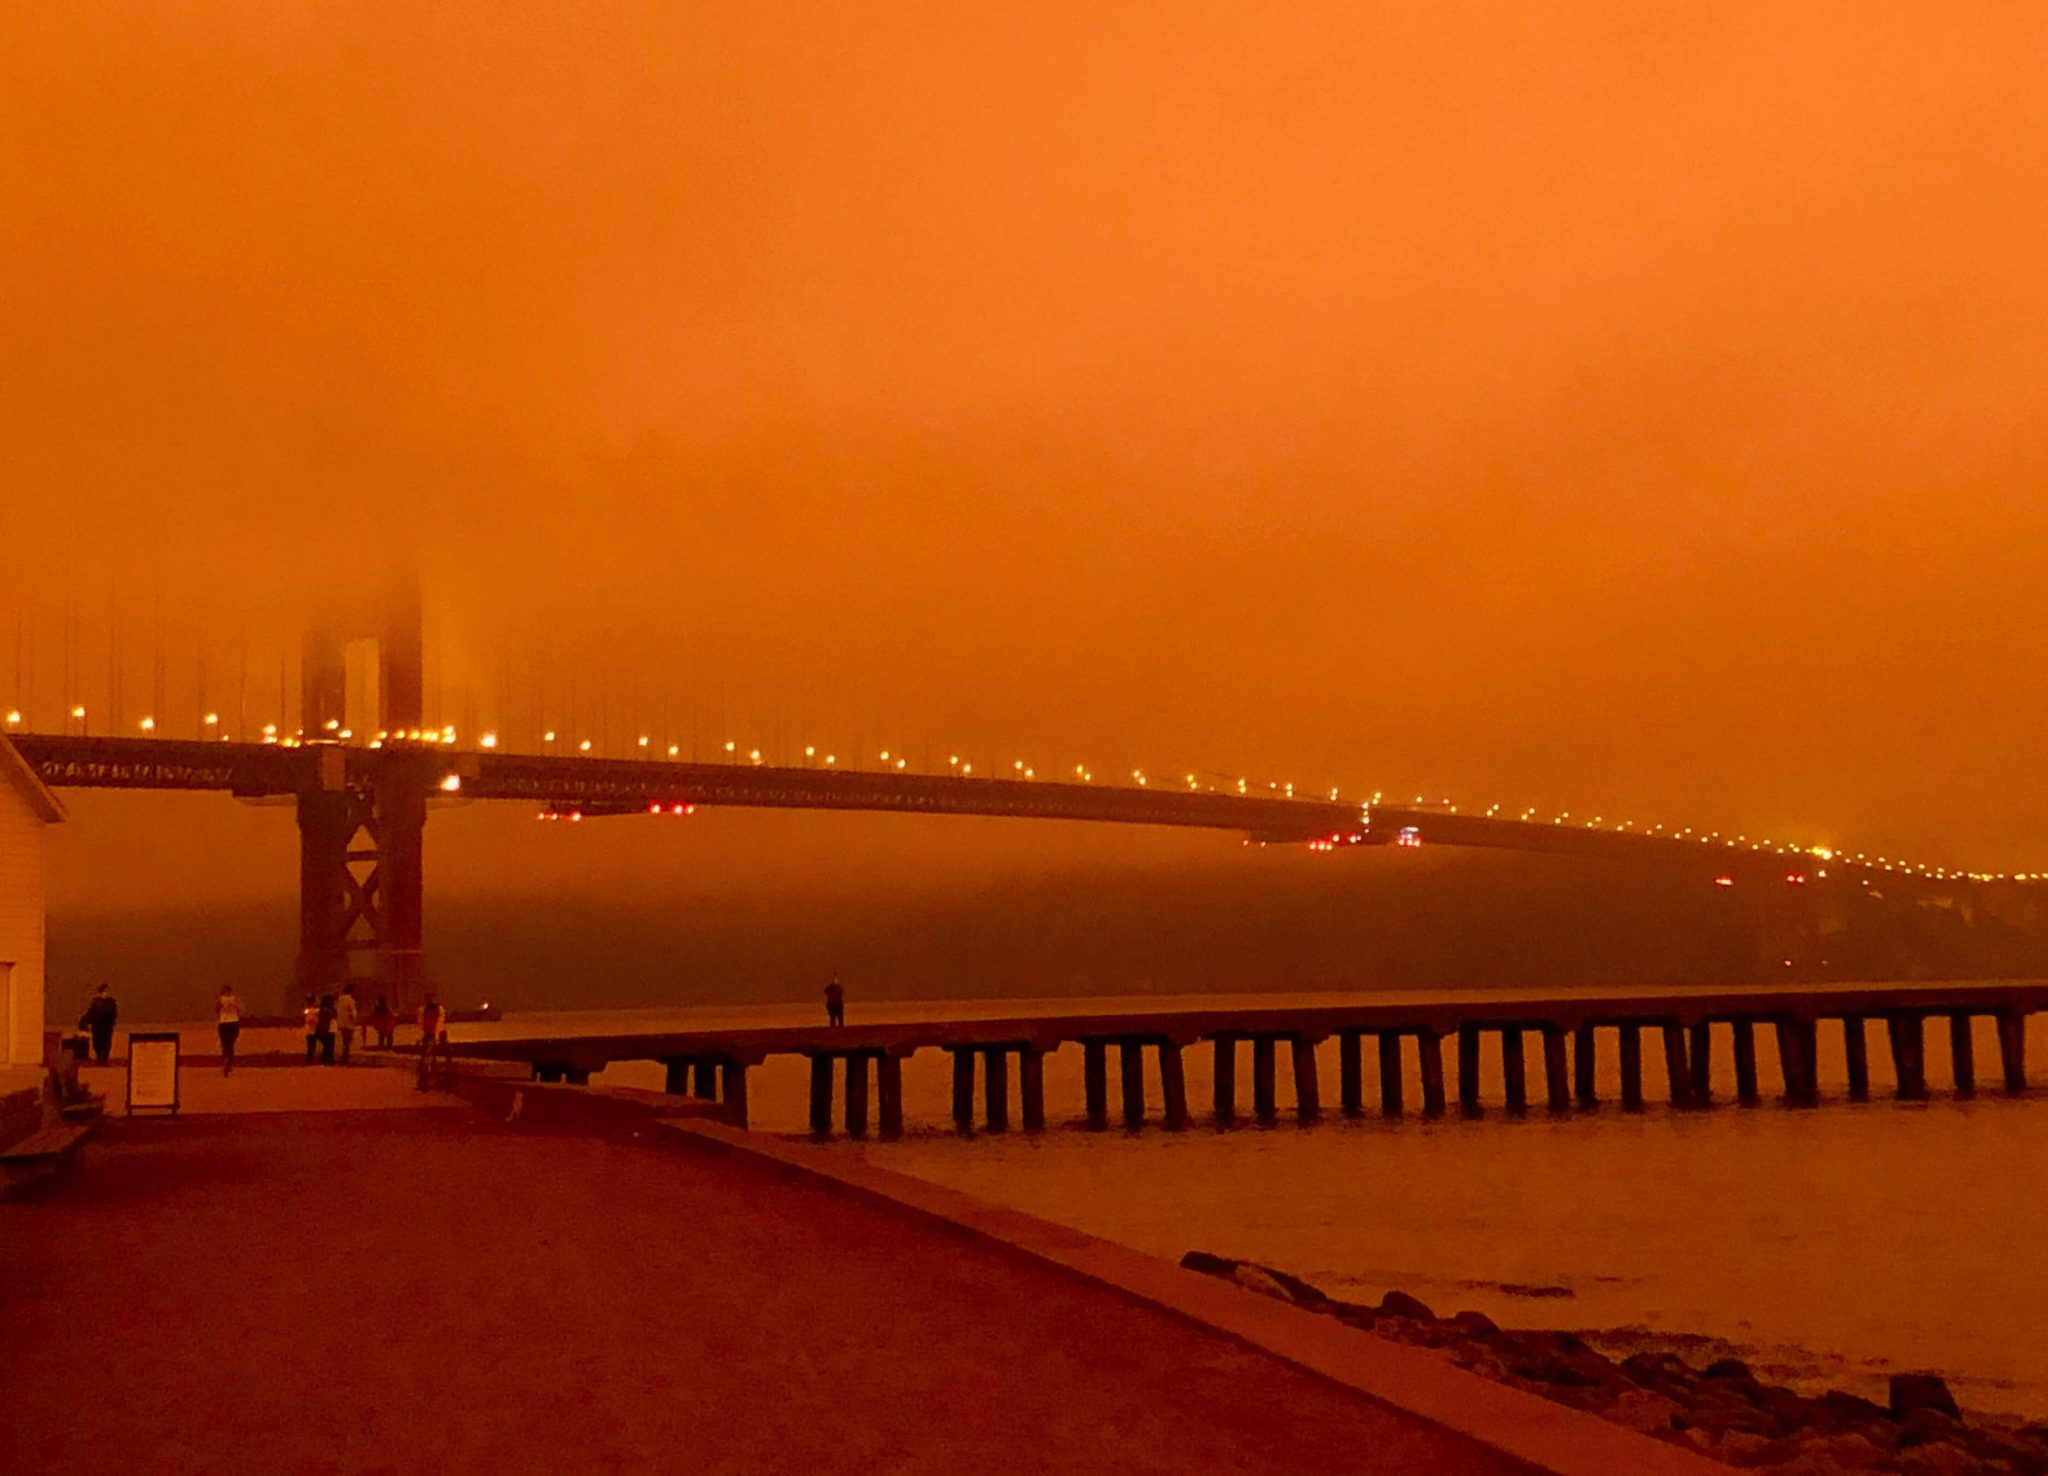 Late summer's wildfires in California shrouded the Bay area in a smoky haze, blotting out the sun. Photo: Michael Sturtevant (September, 2020)